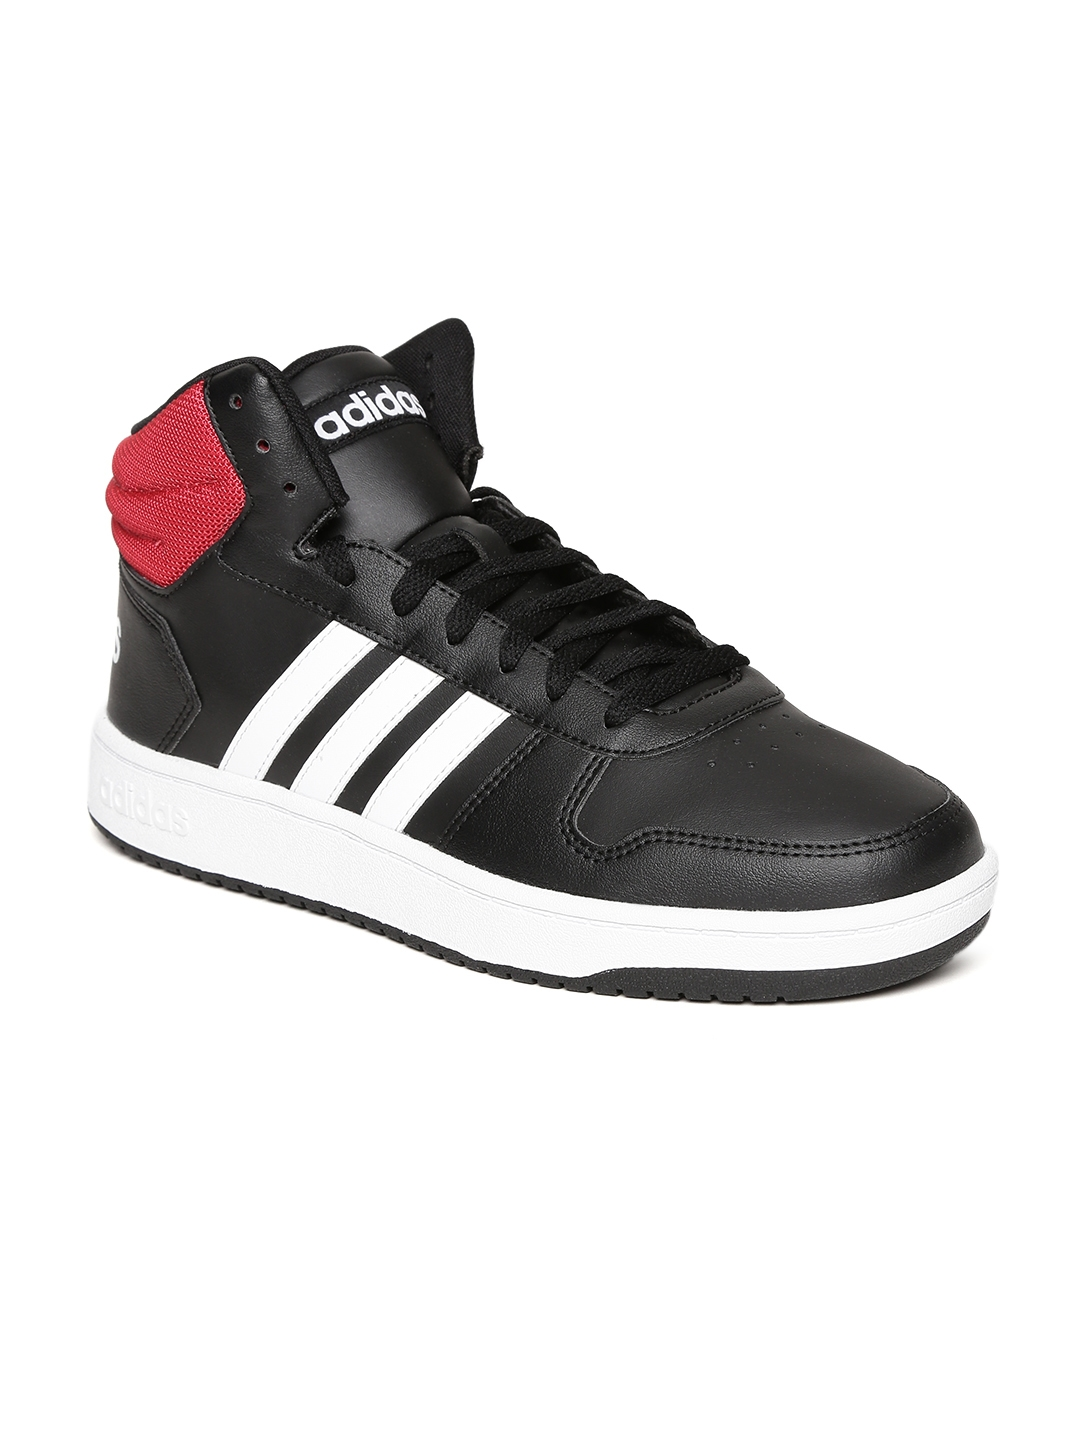 8d7e000908fb Buy ADIDAS Men Black HOOPS 2.0 MID Sneakers - Casual Shoes for Men ...